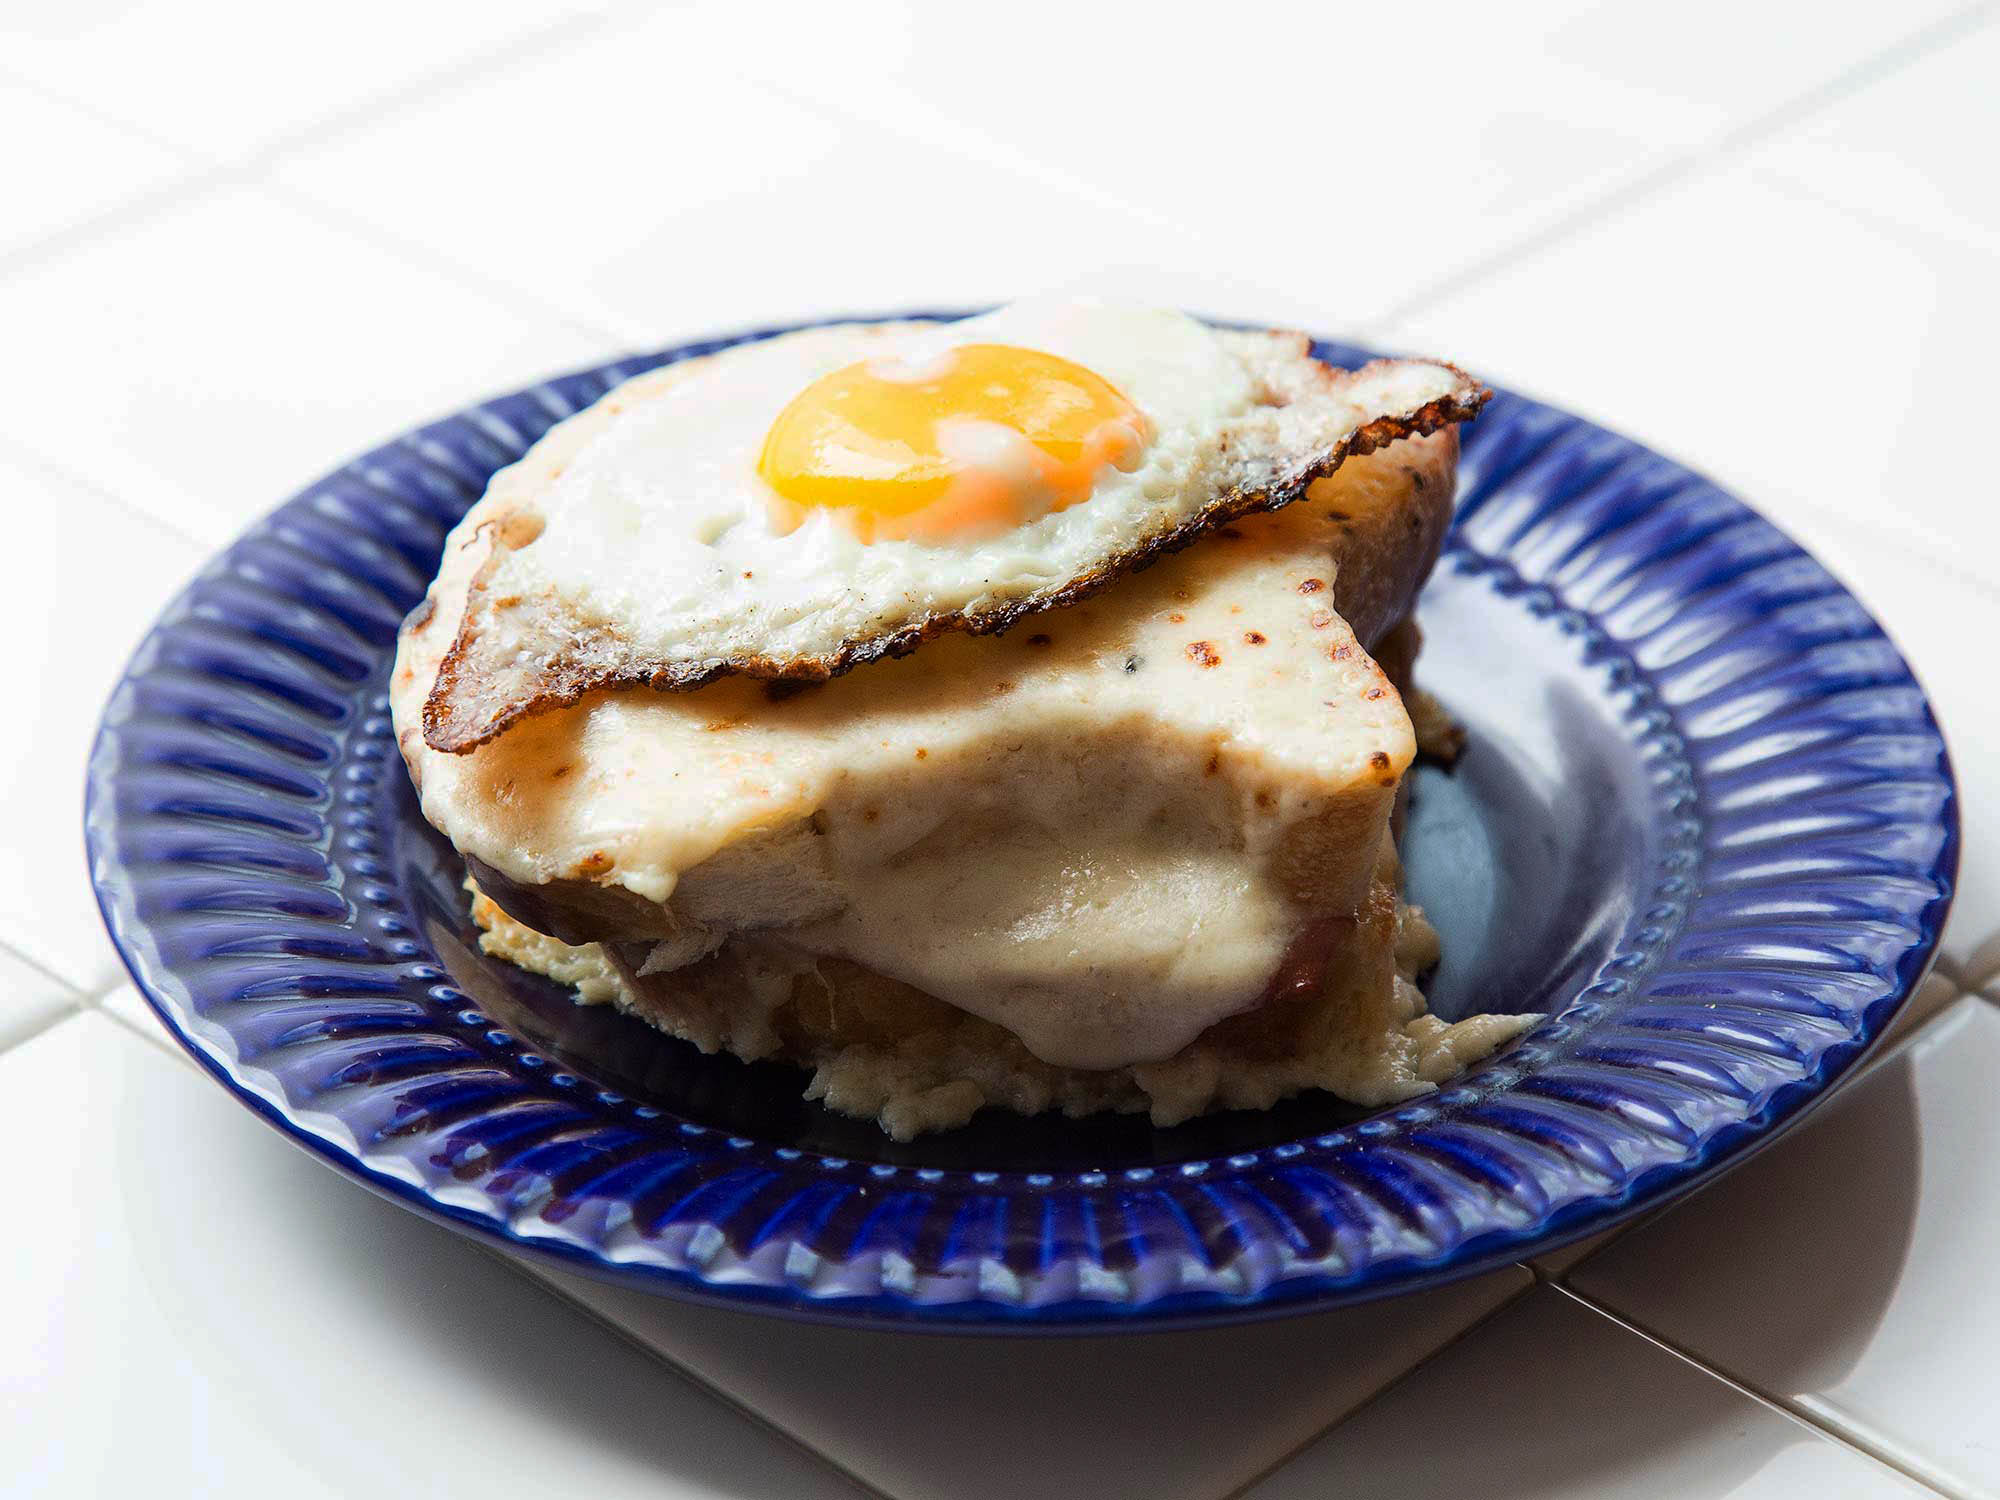 How to Make a Croque Madame